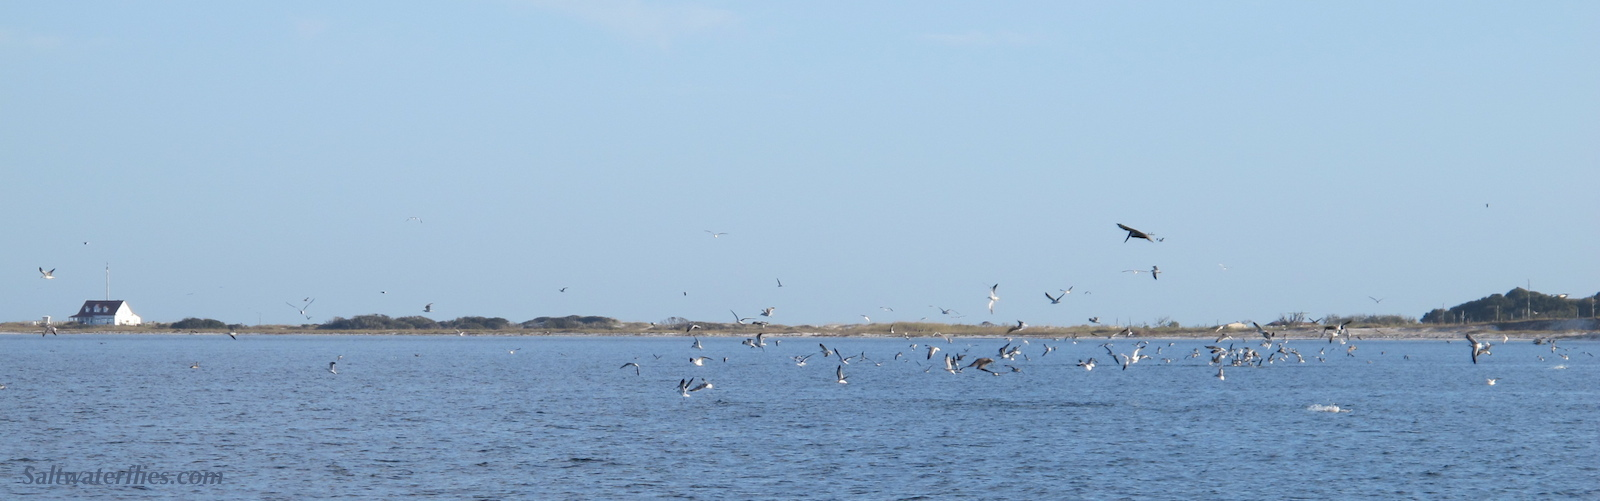 Blitz! - Photo: Chris Windram